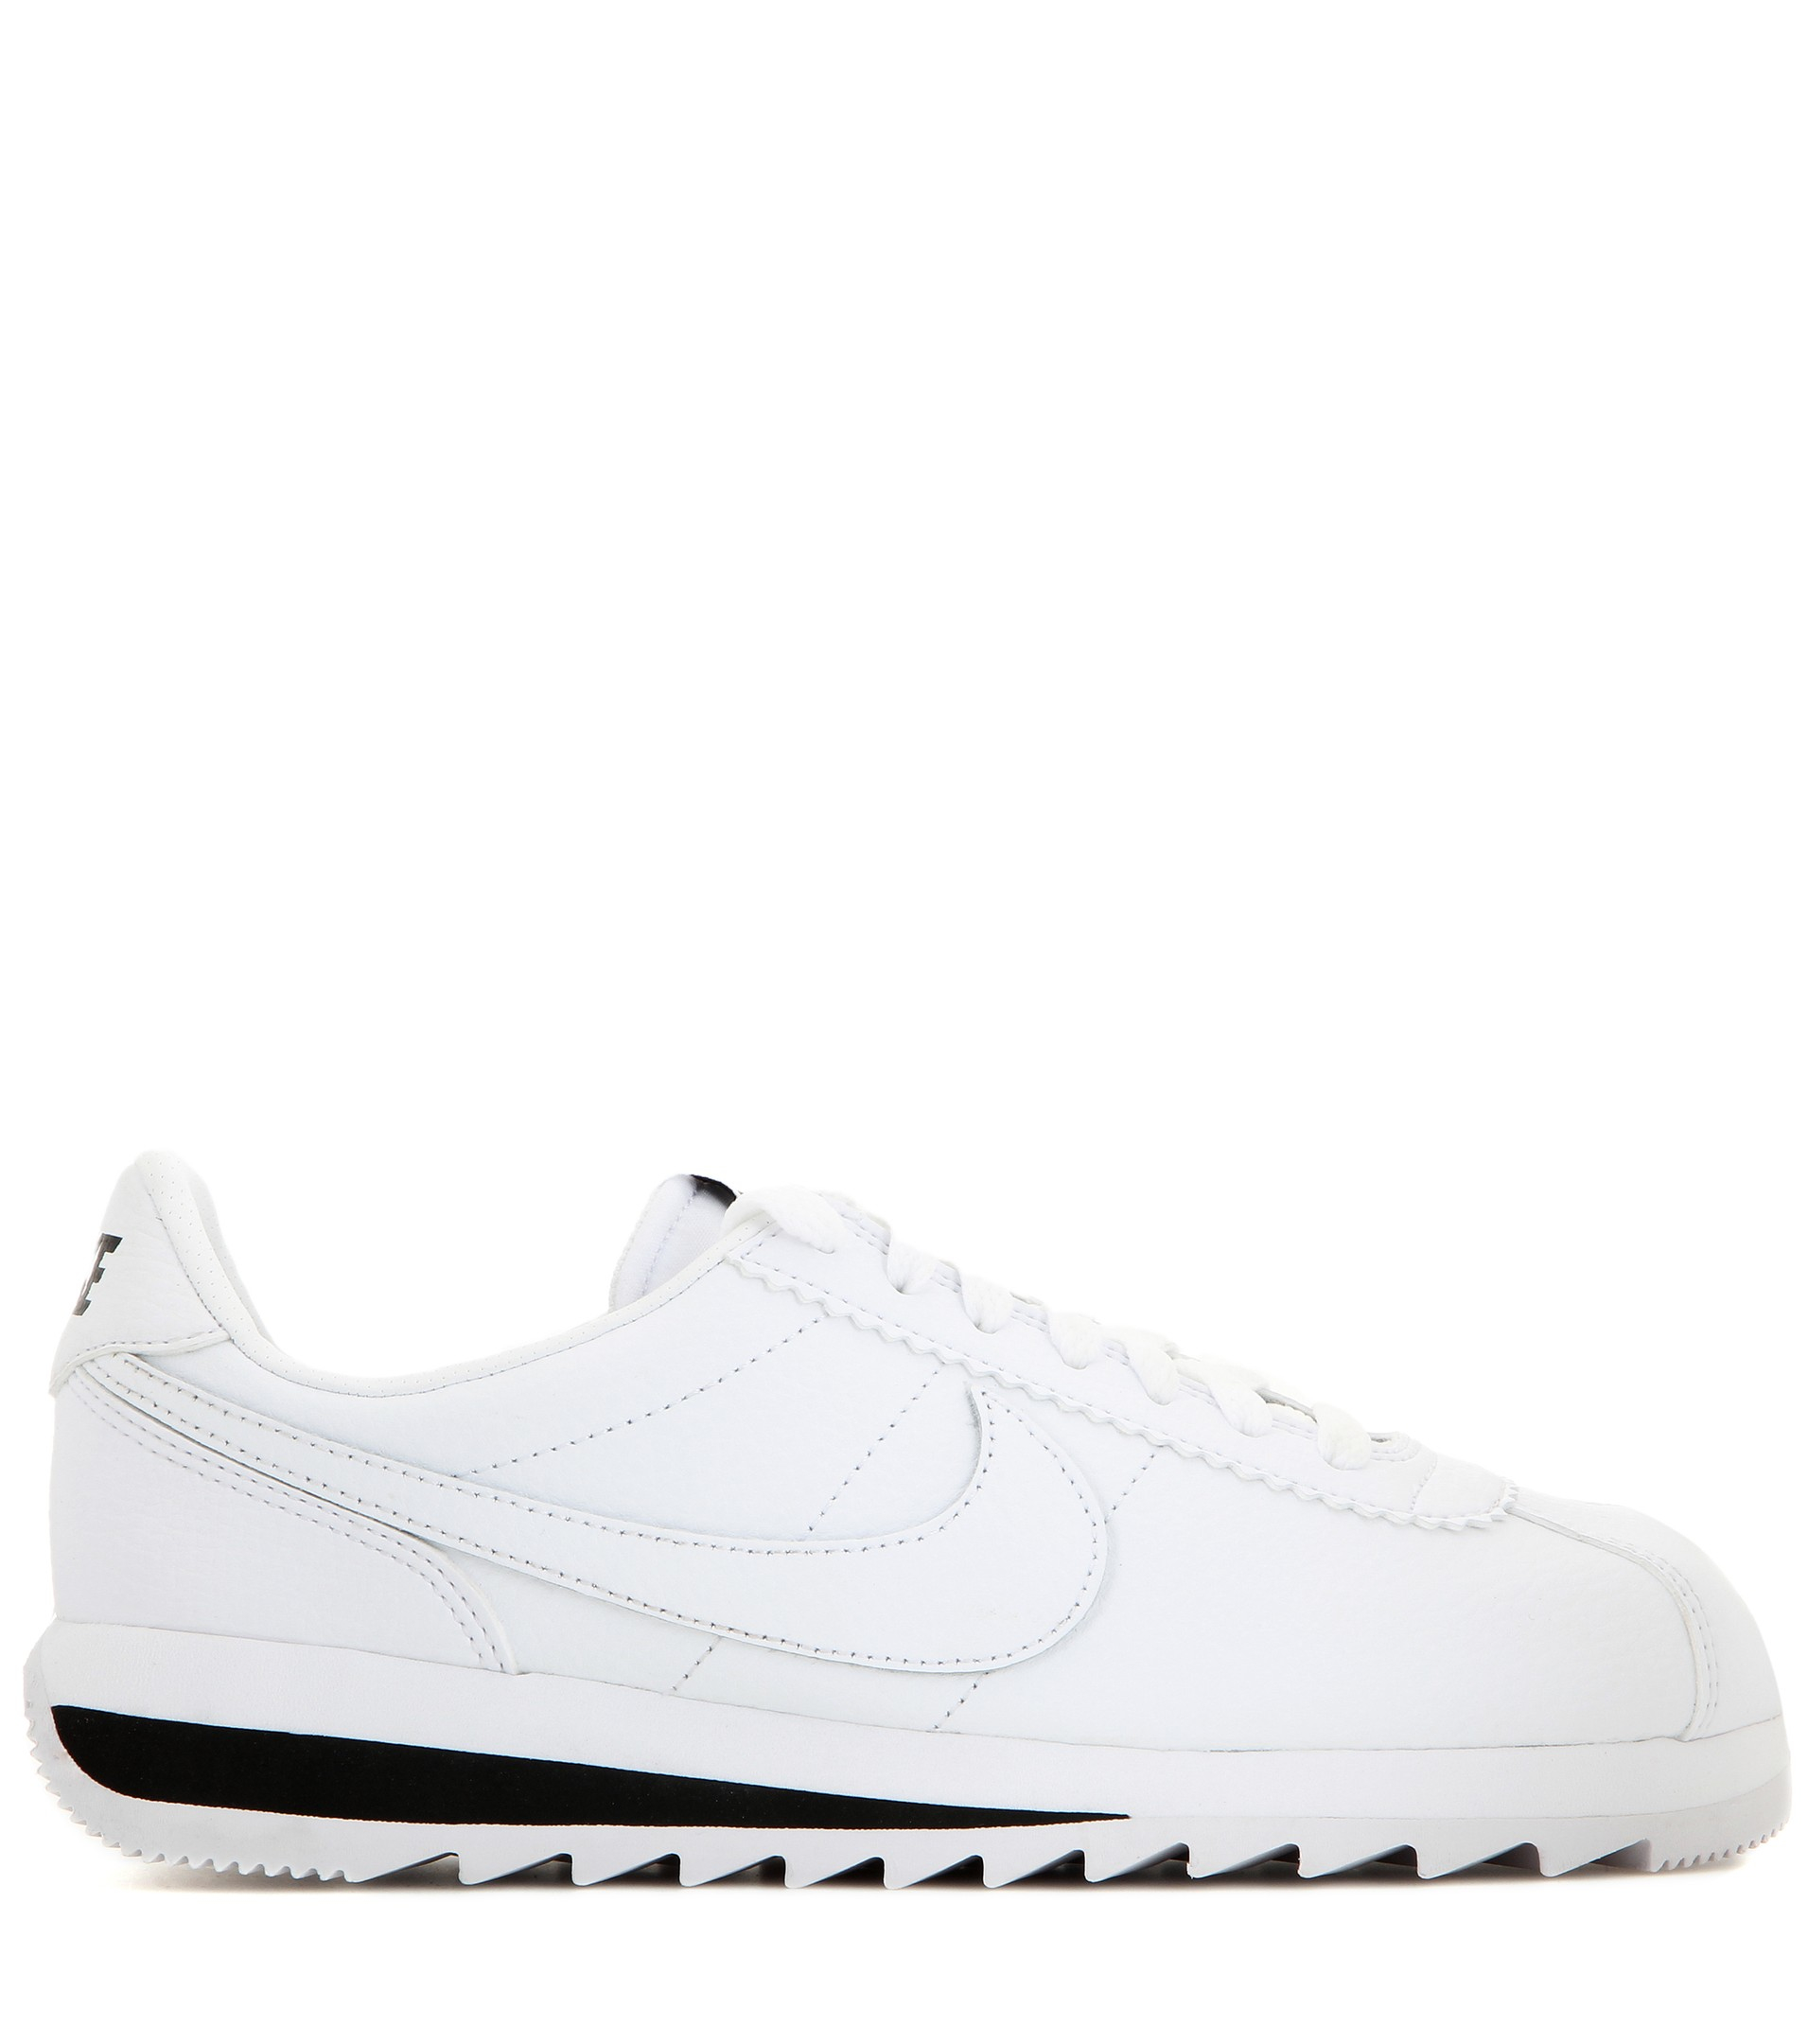 CLASSIC CORTEZ PREMIUM - FOOTWEAR - Low-tops & sneakers Nike bgiQYHJeb